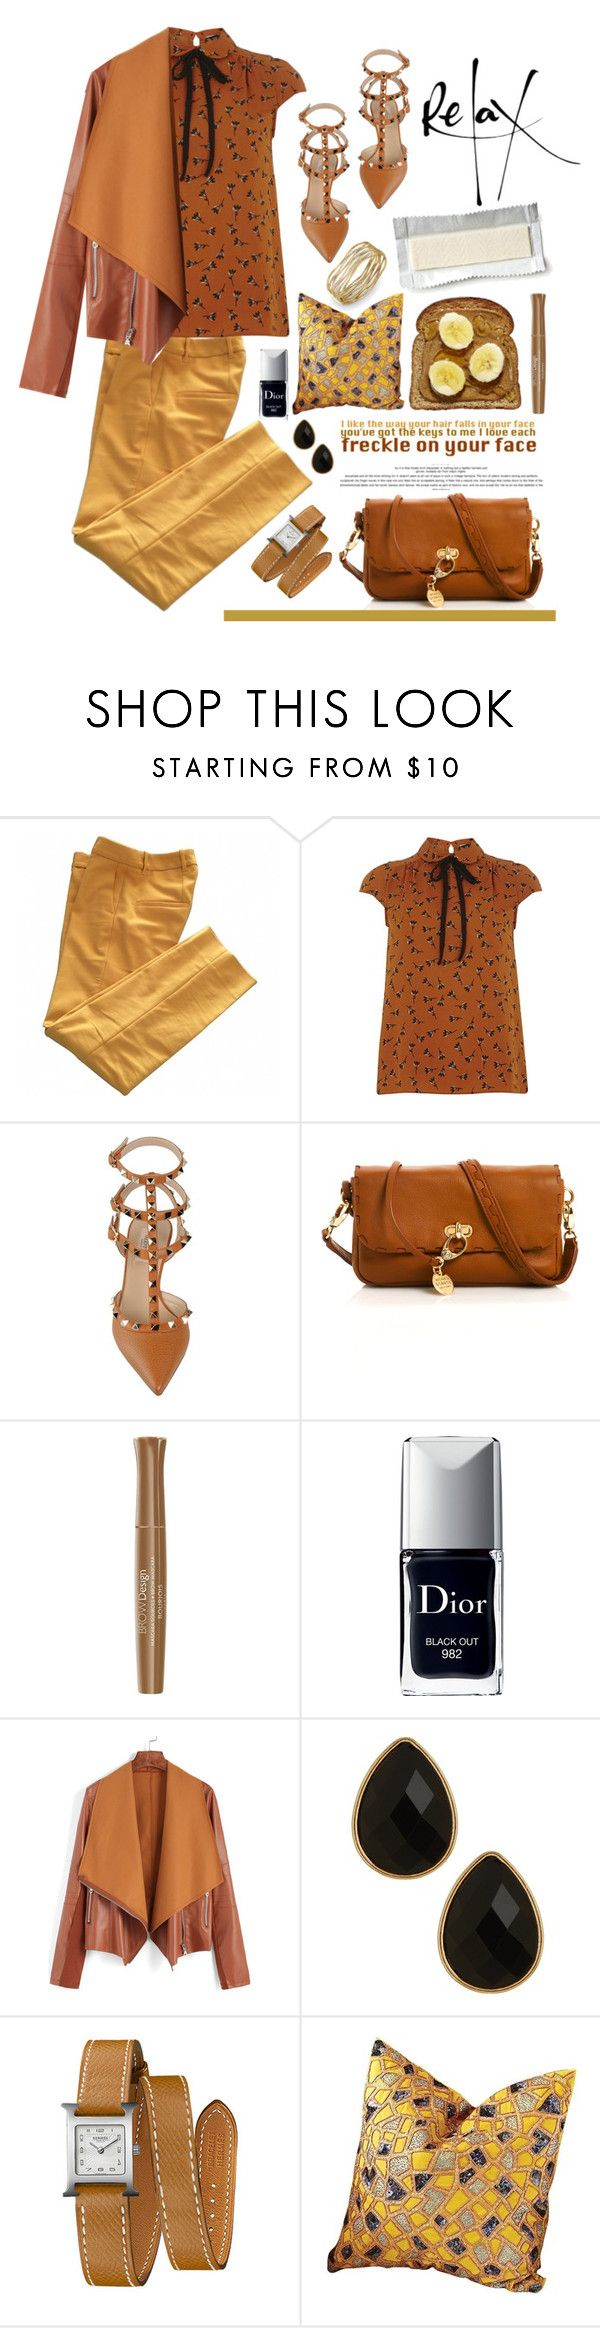 """25.04.16"" by malenafashion27 ❤ liked on Polyvore featuring Zara, Dorothy Perkins, Valentino, Henri Bendel, Bourjois, Christian Dior, Natasha Accessories, Hermès and Global Views"